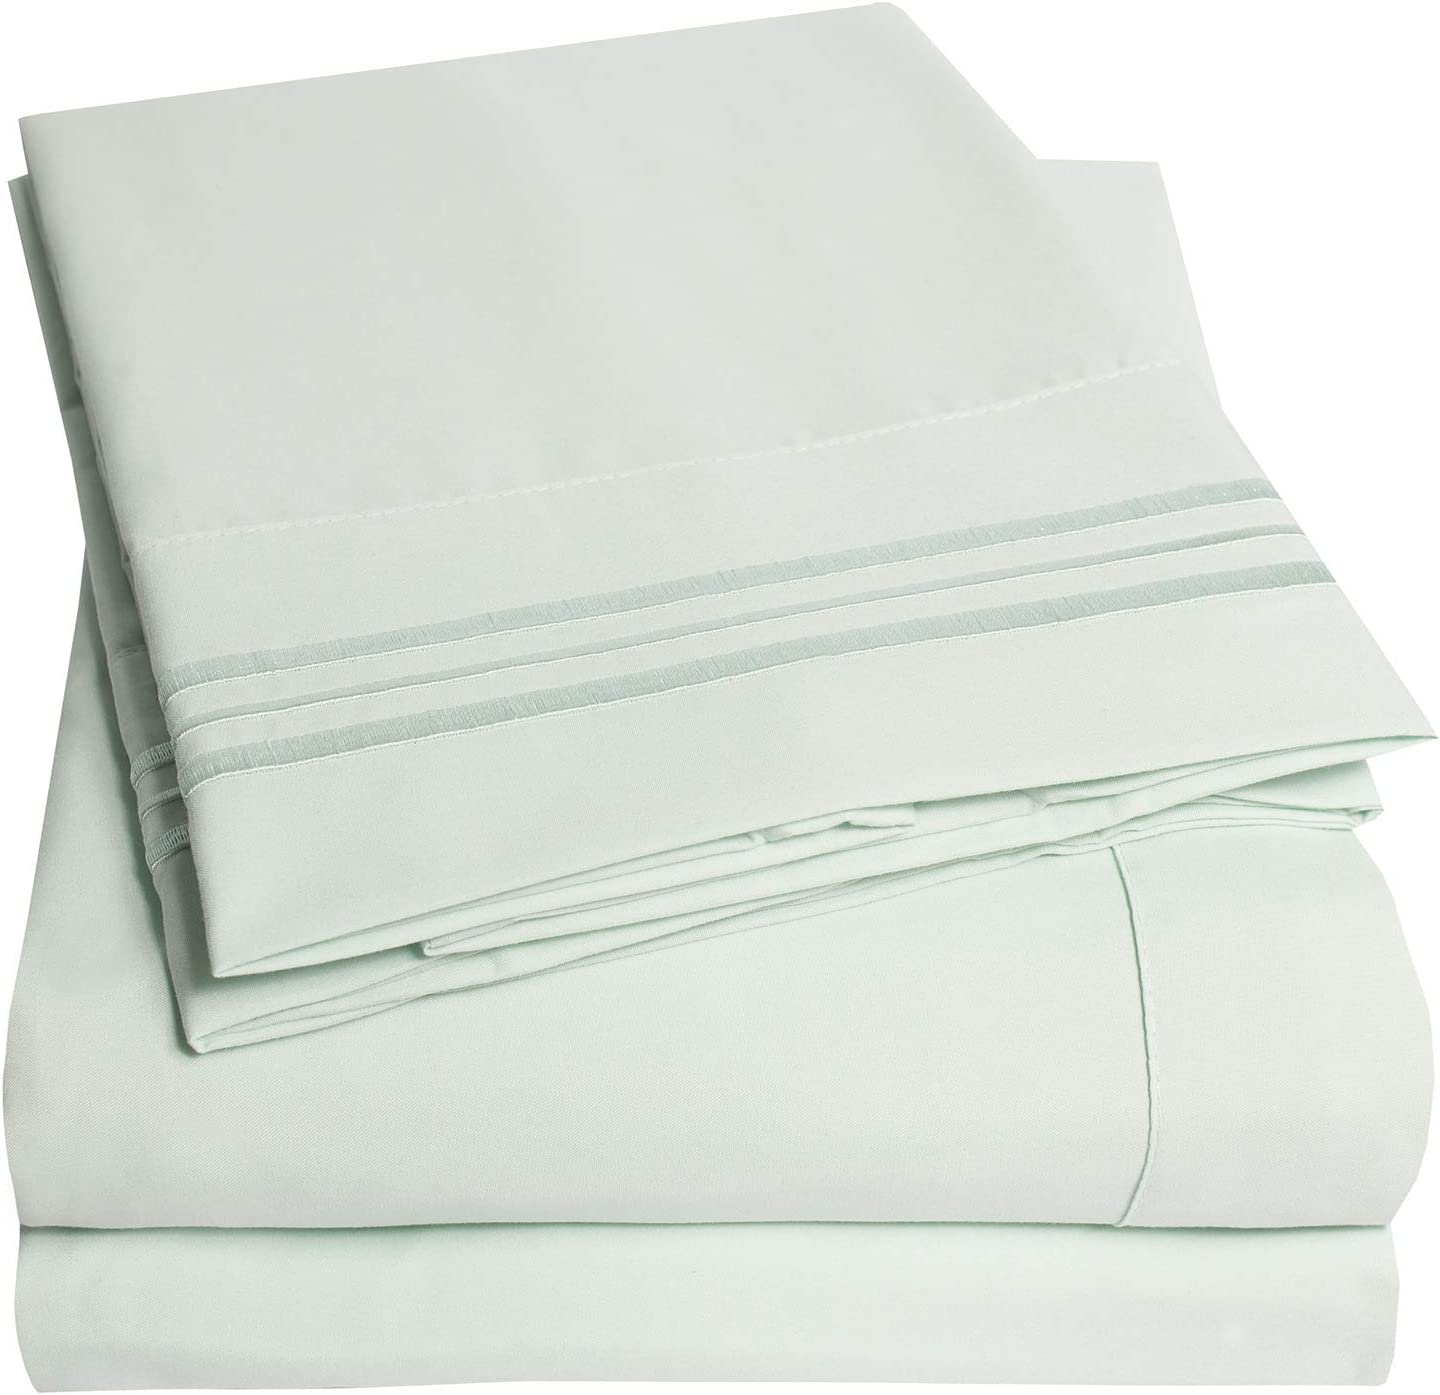 1500 Supreme Collection Bed Sheets Set - Luxury Hotel Style 4 Piece Extra Soft Sheet Set - Deep Pocket Wrinkle Free Hypoallergenic Bedding - Over 40+ Colors - California King, Mint